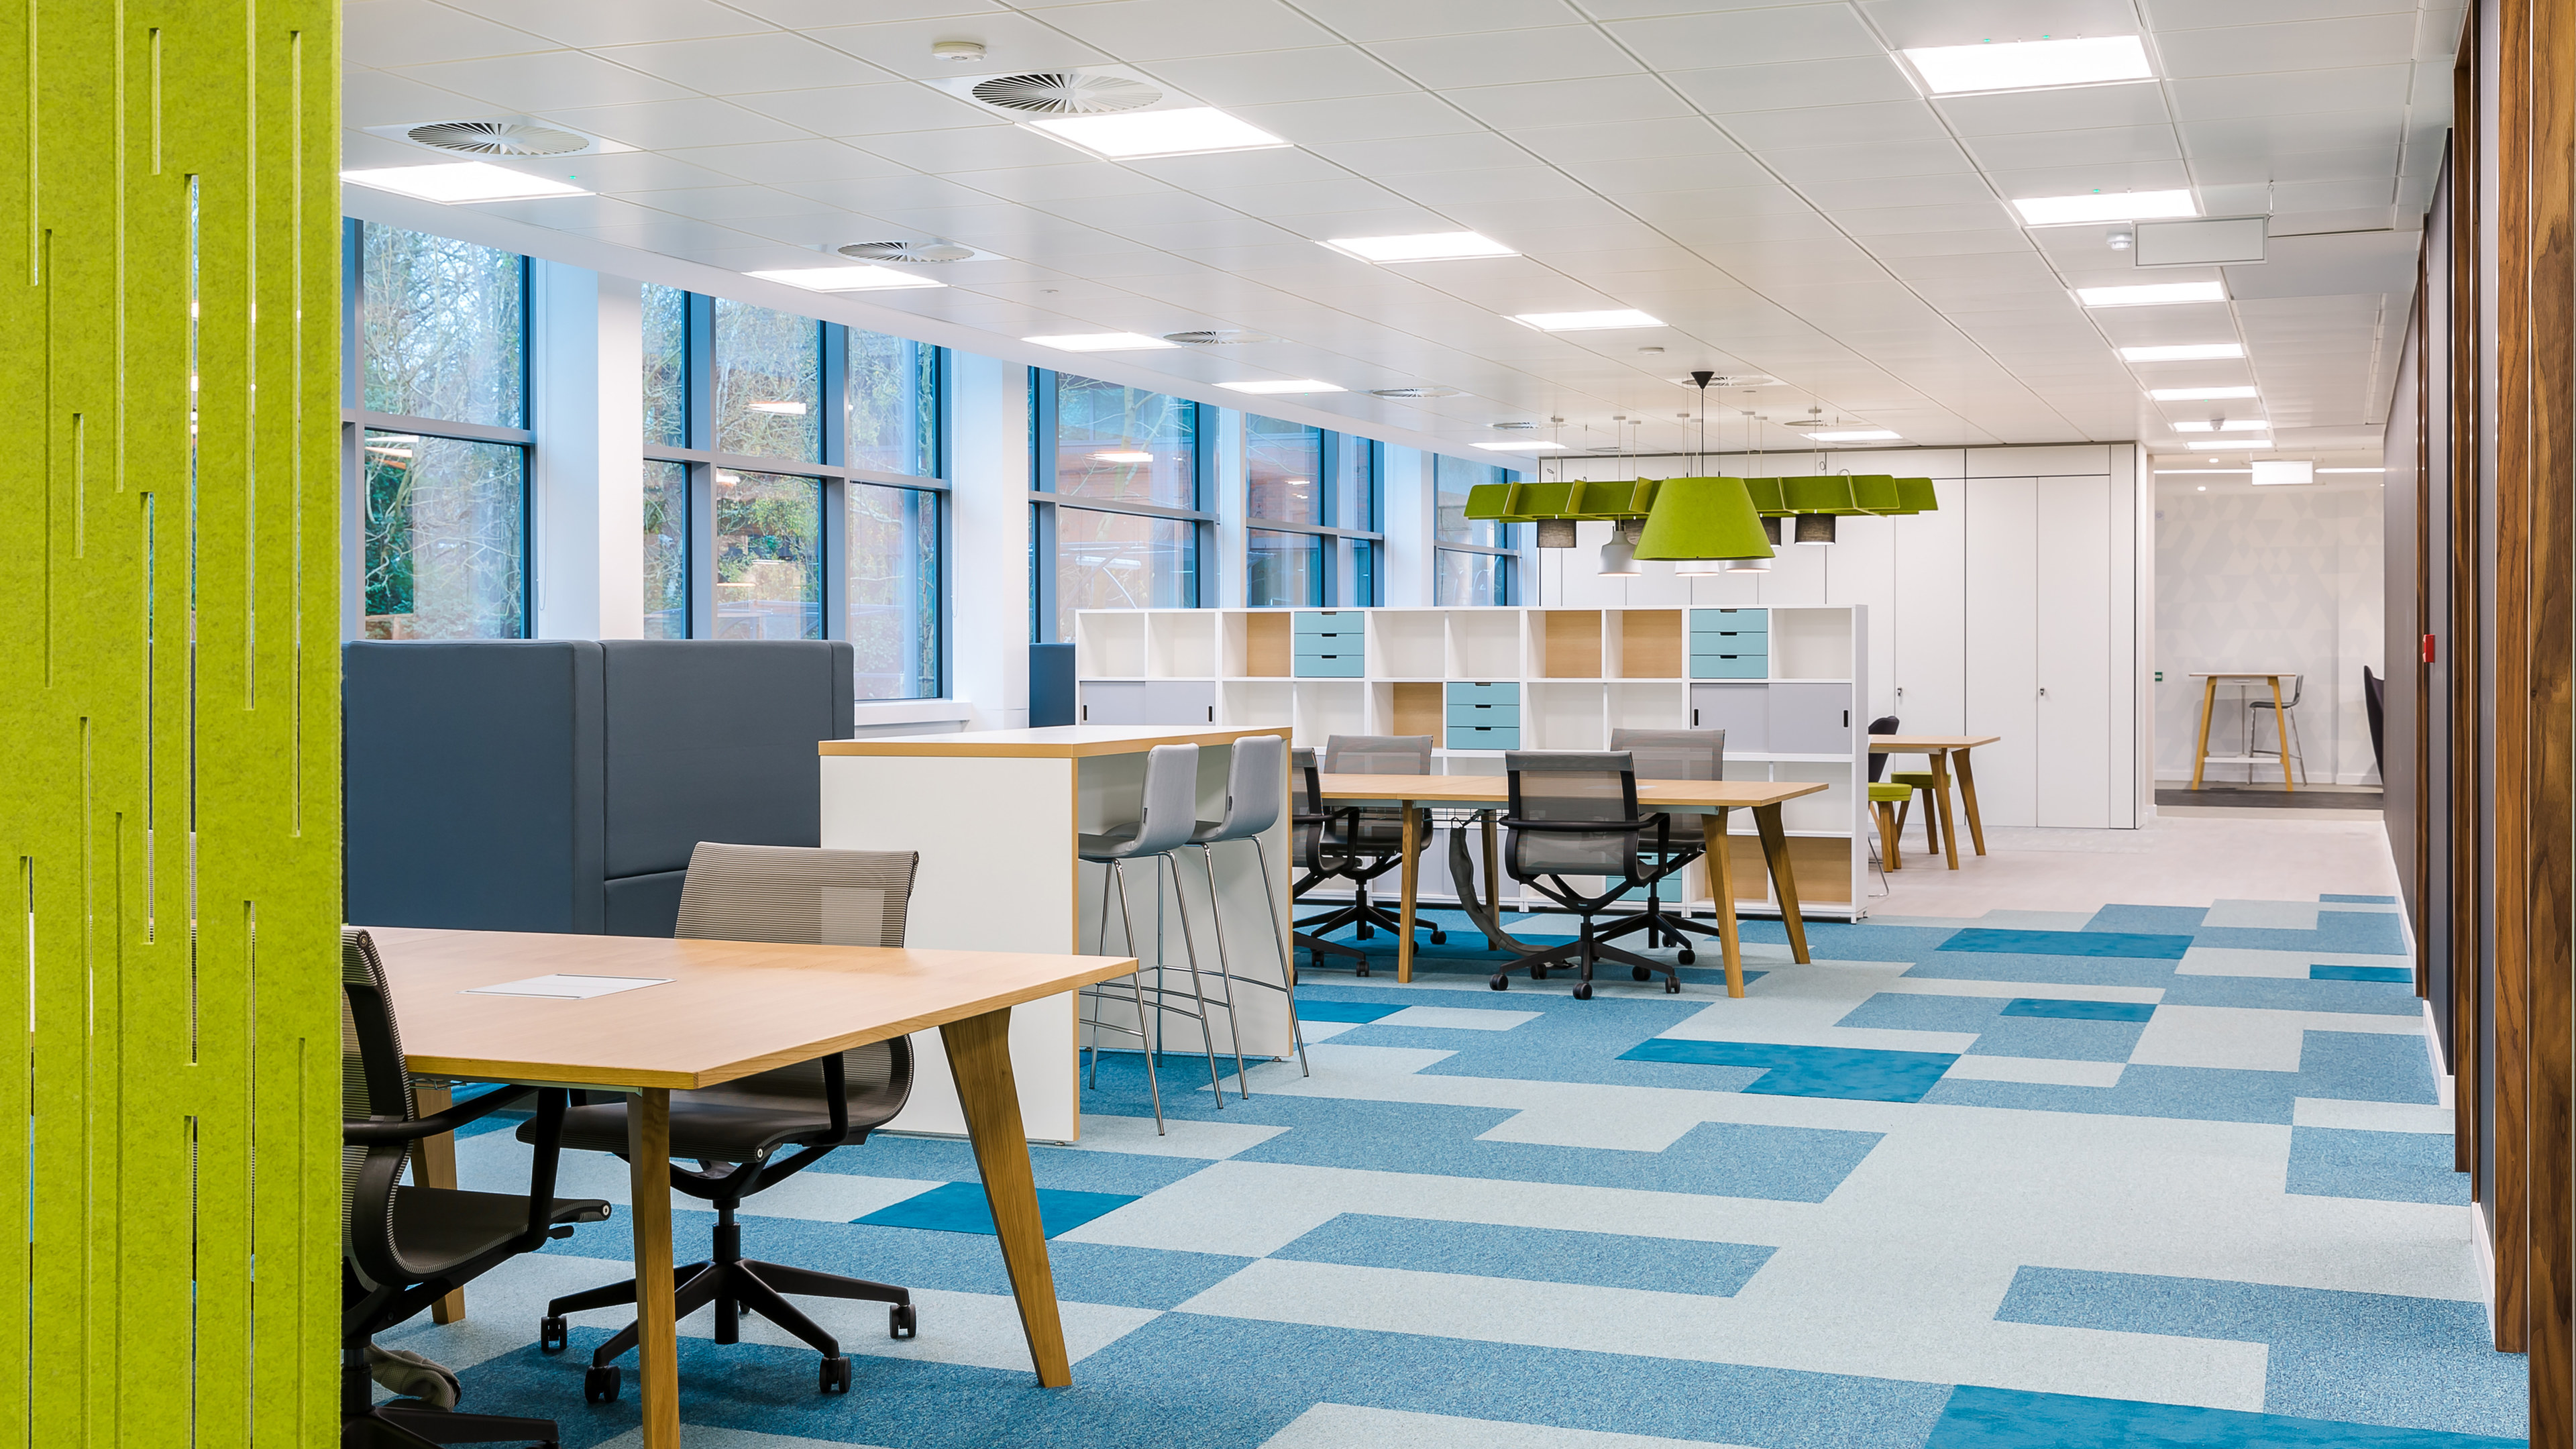 Zebra Technologies Office Design - Case Study | Oktra